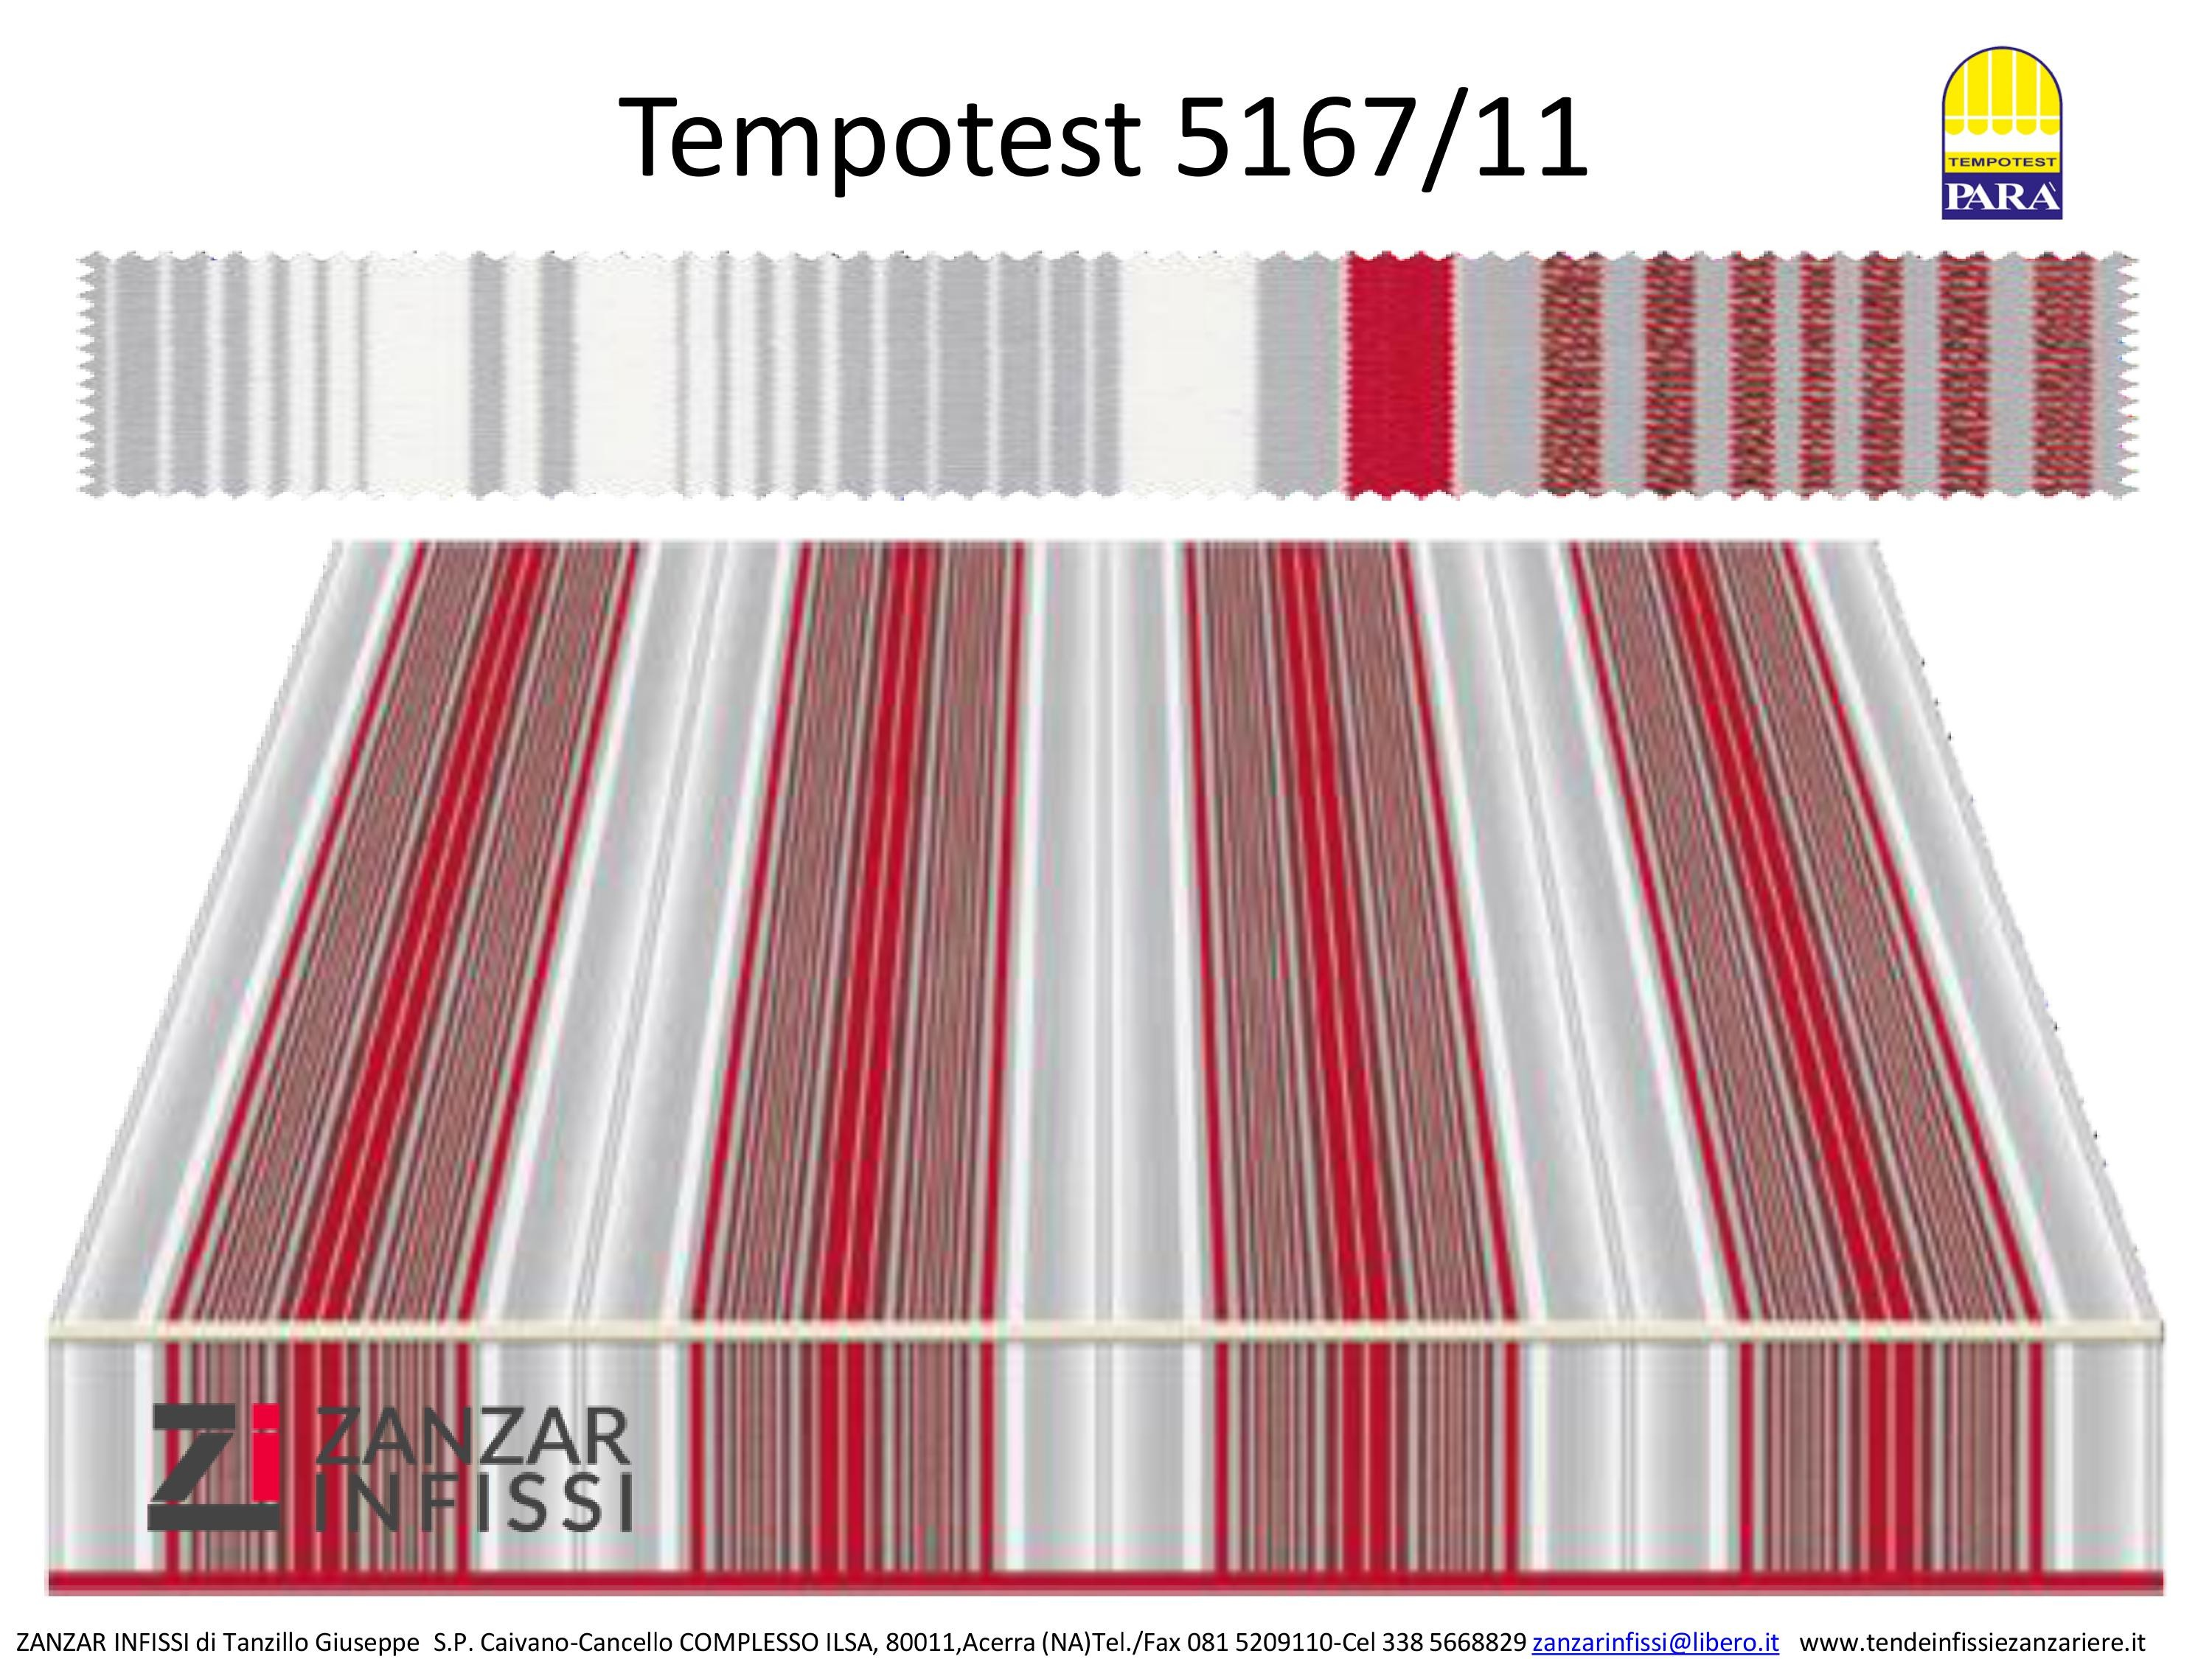 Tempotest 5167/11